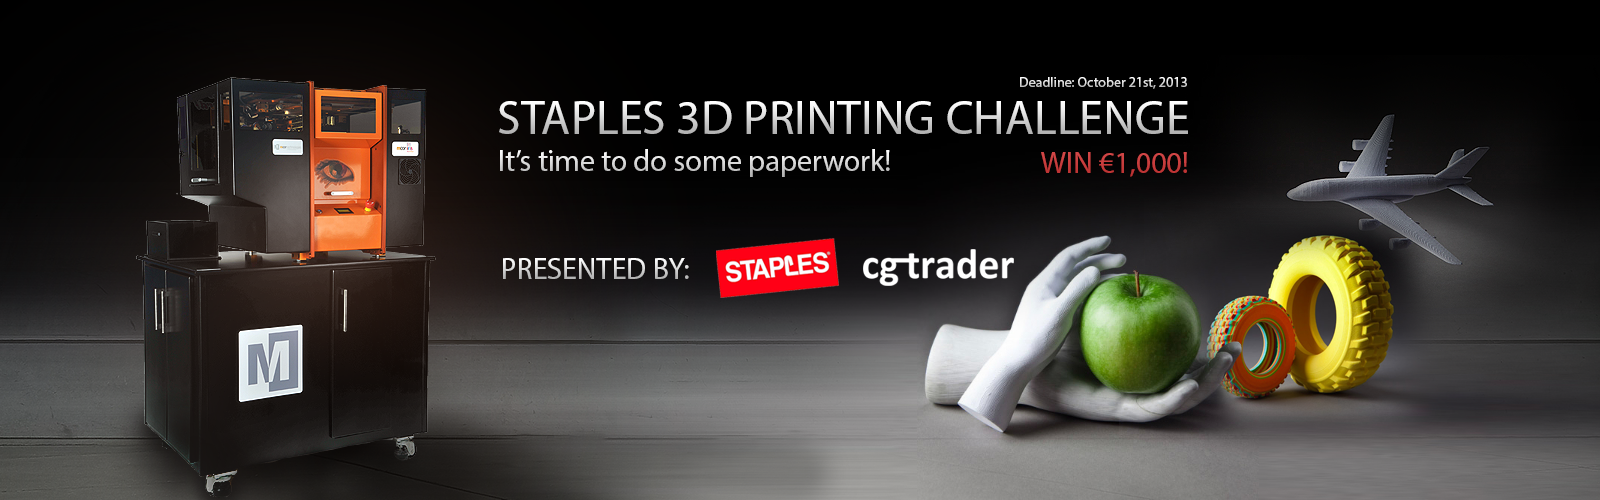 Staples 3D Printing Challenge